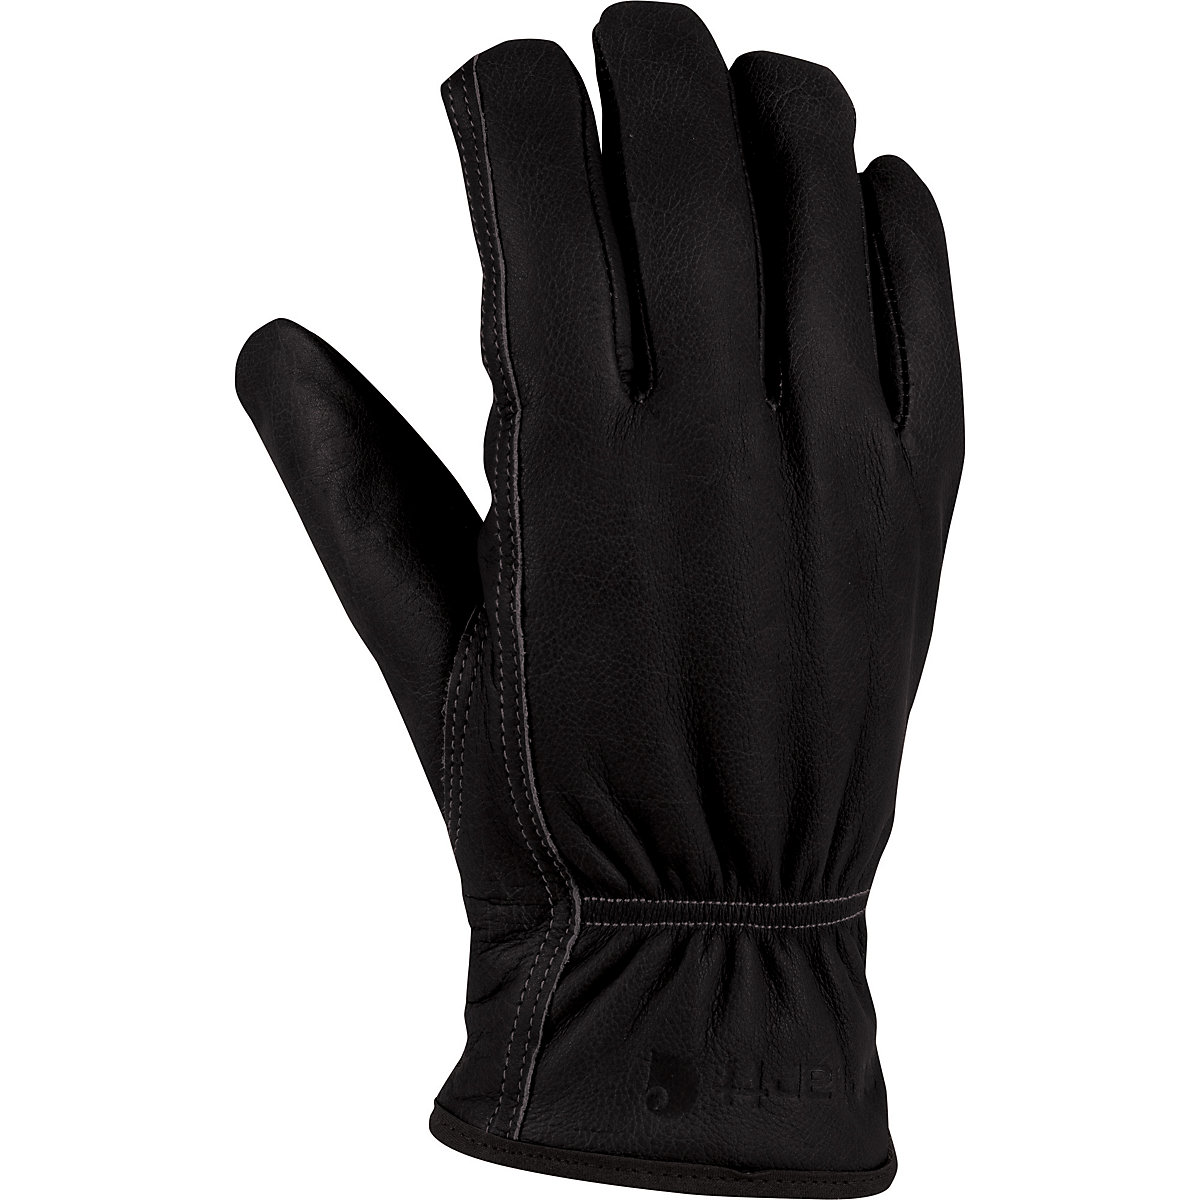 Thinsulate leather driving gloves - Thinsulate Leather Driving Gloves 8